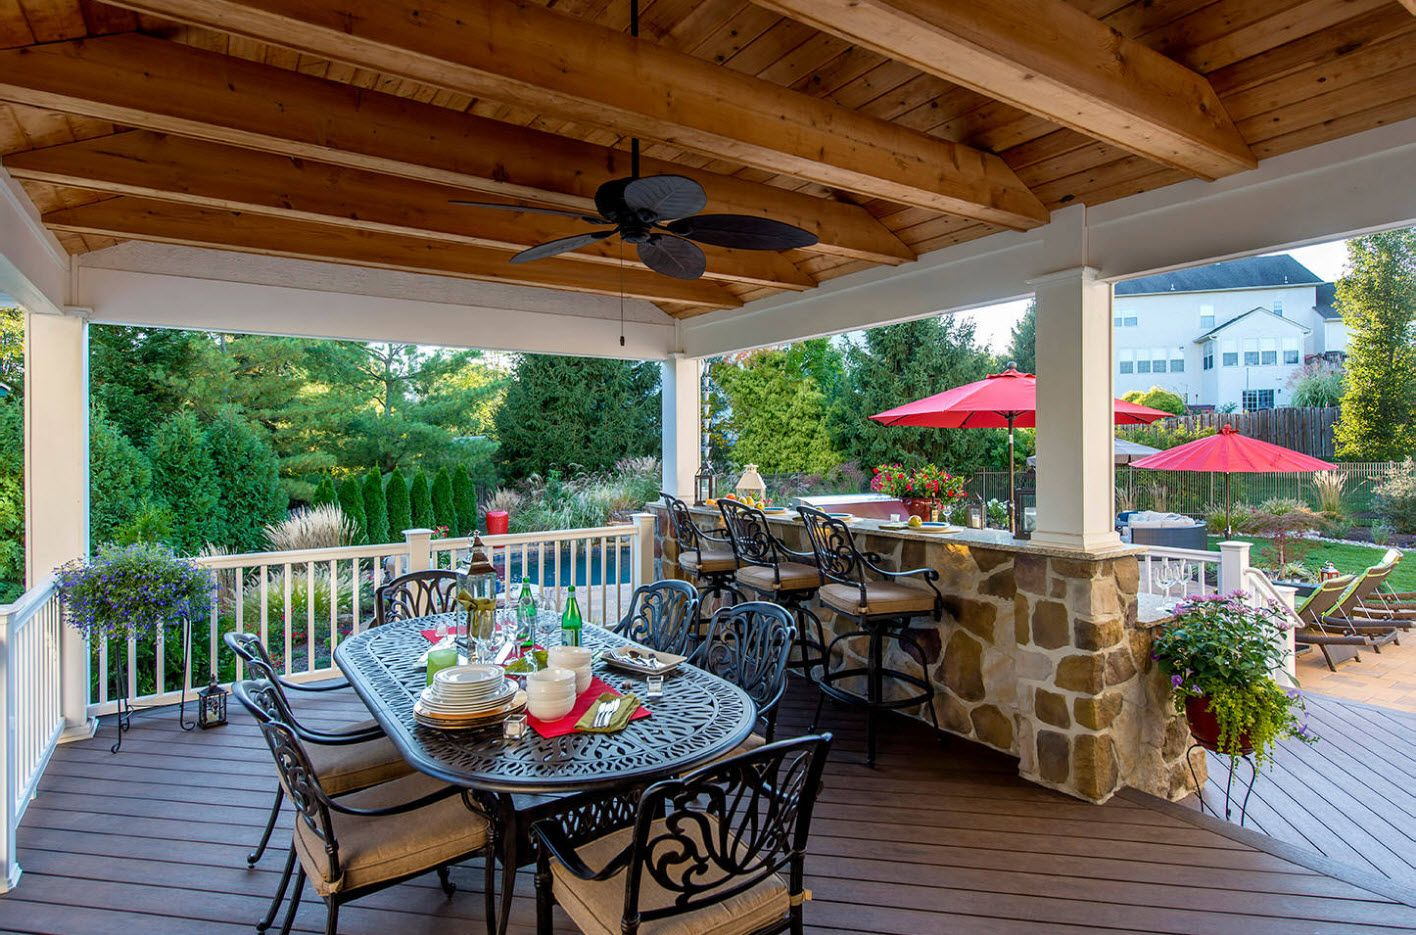 Mediterranean style for the porch area with open beam roof